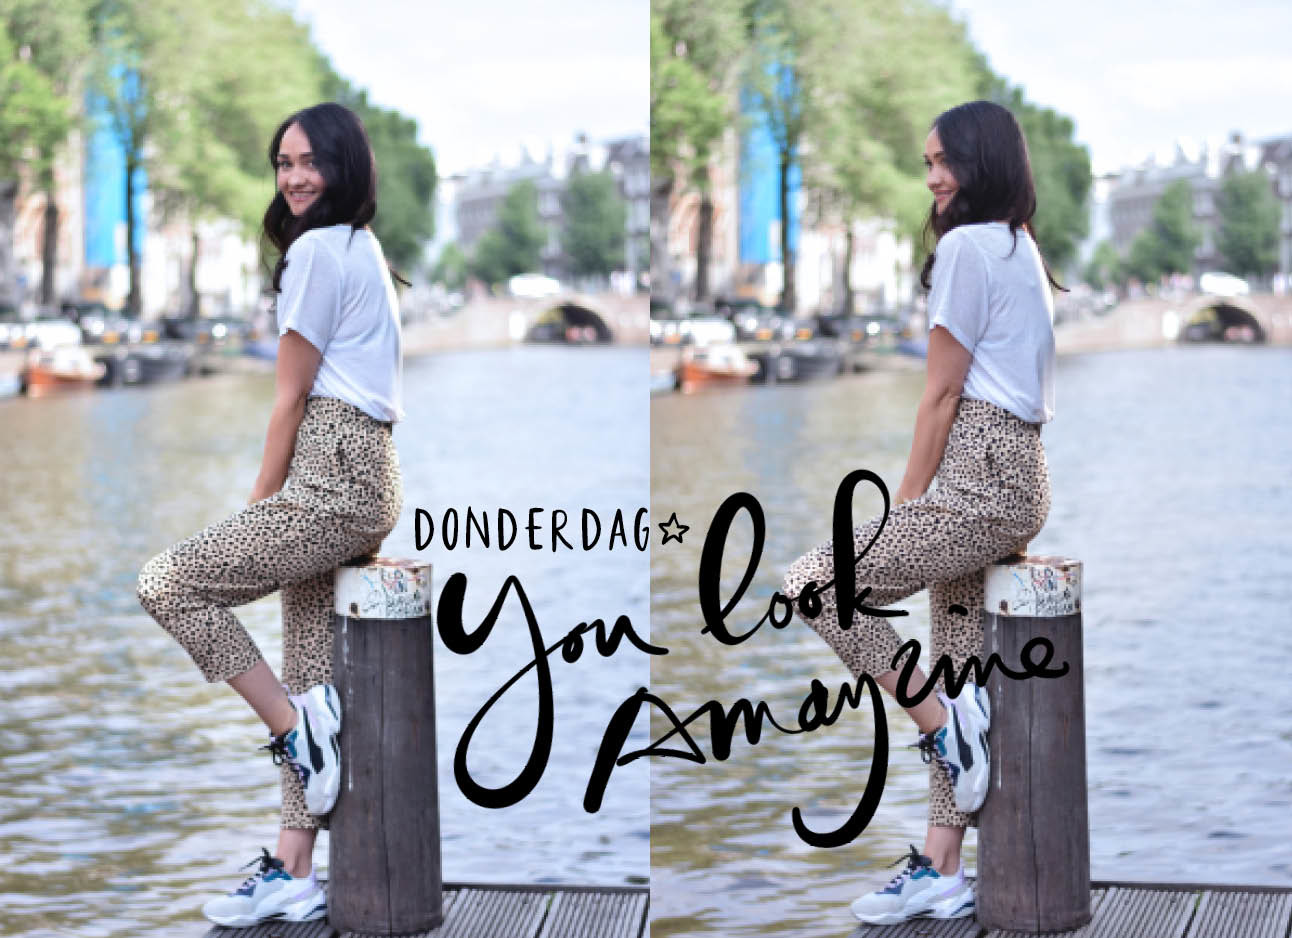 thirza solcer in de look of the day met een panterbroek, wit t-shirt en sneakers